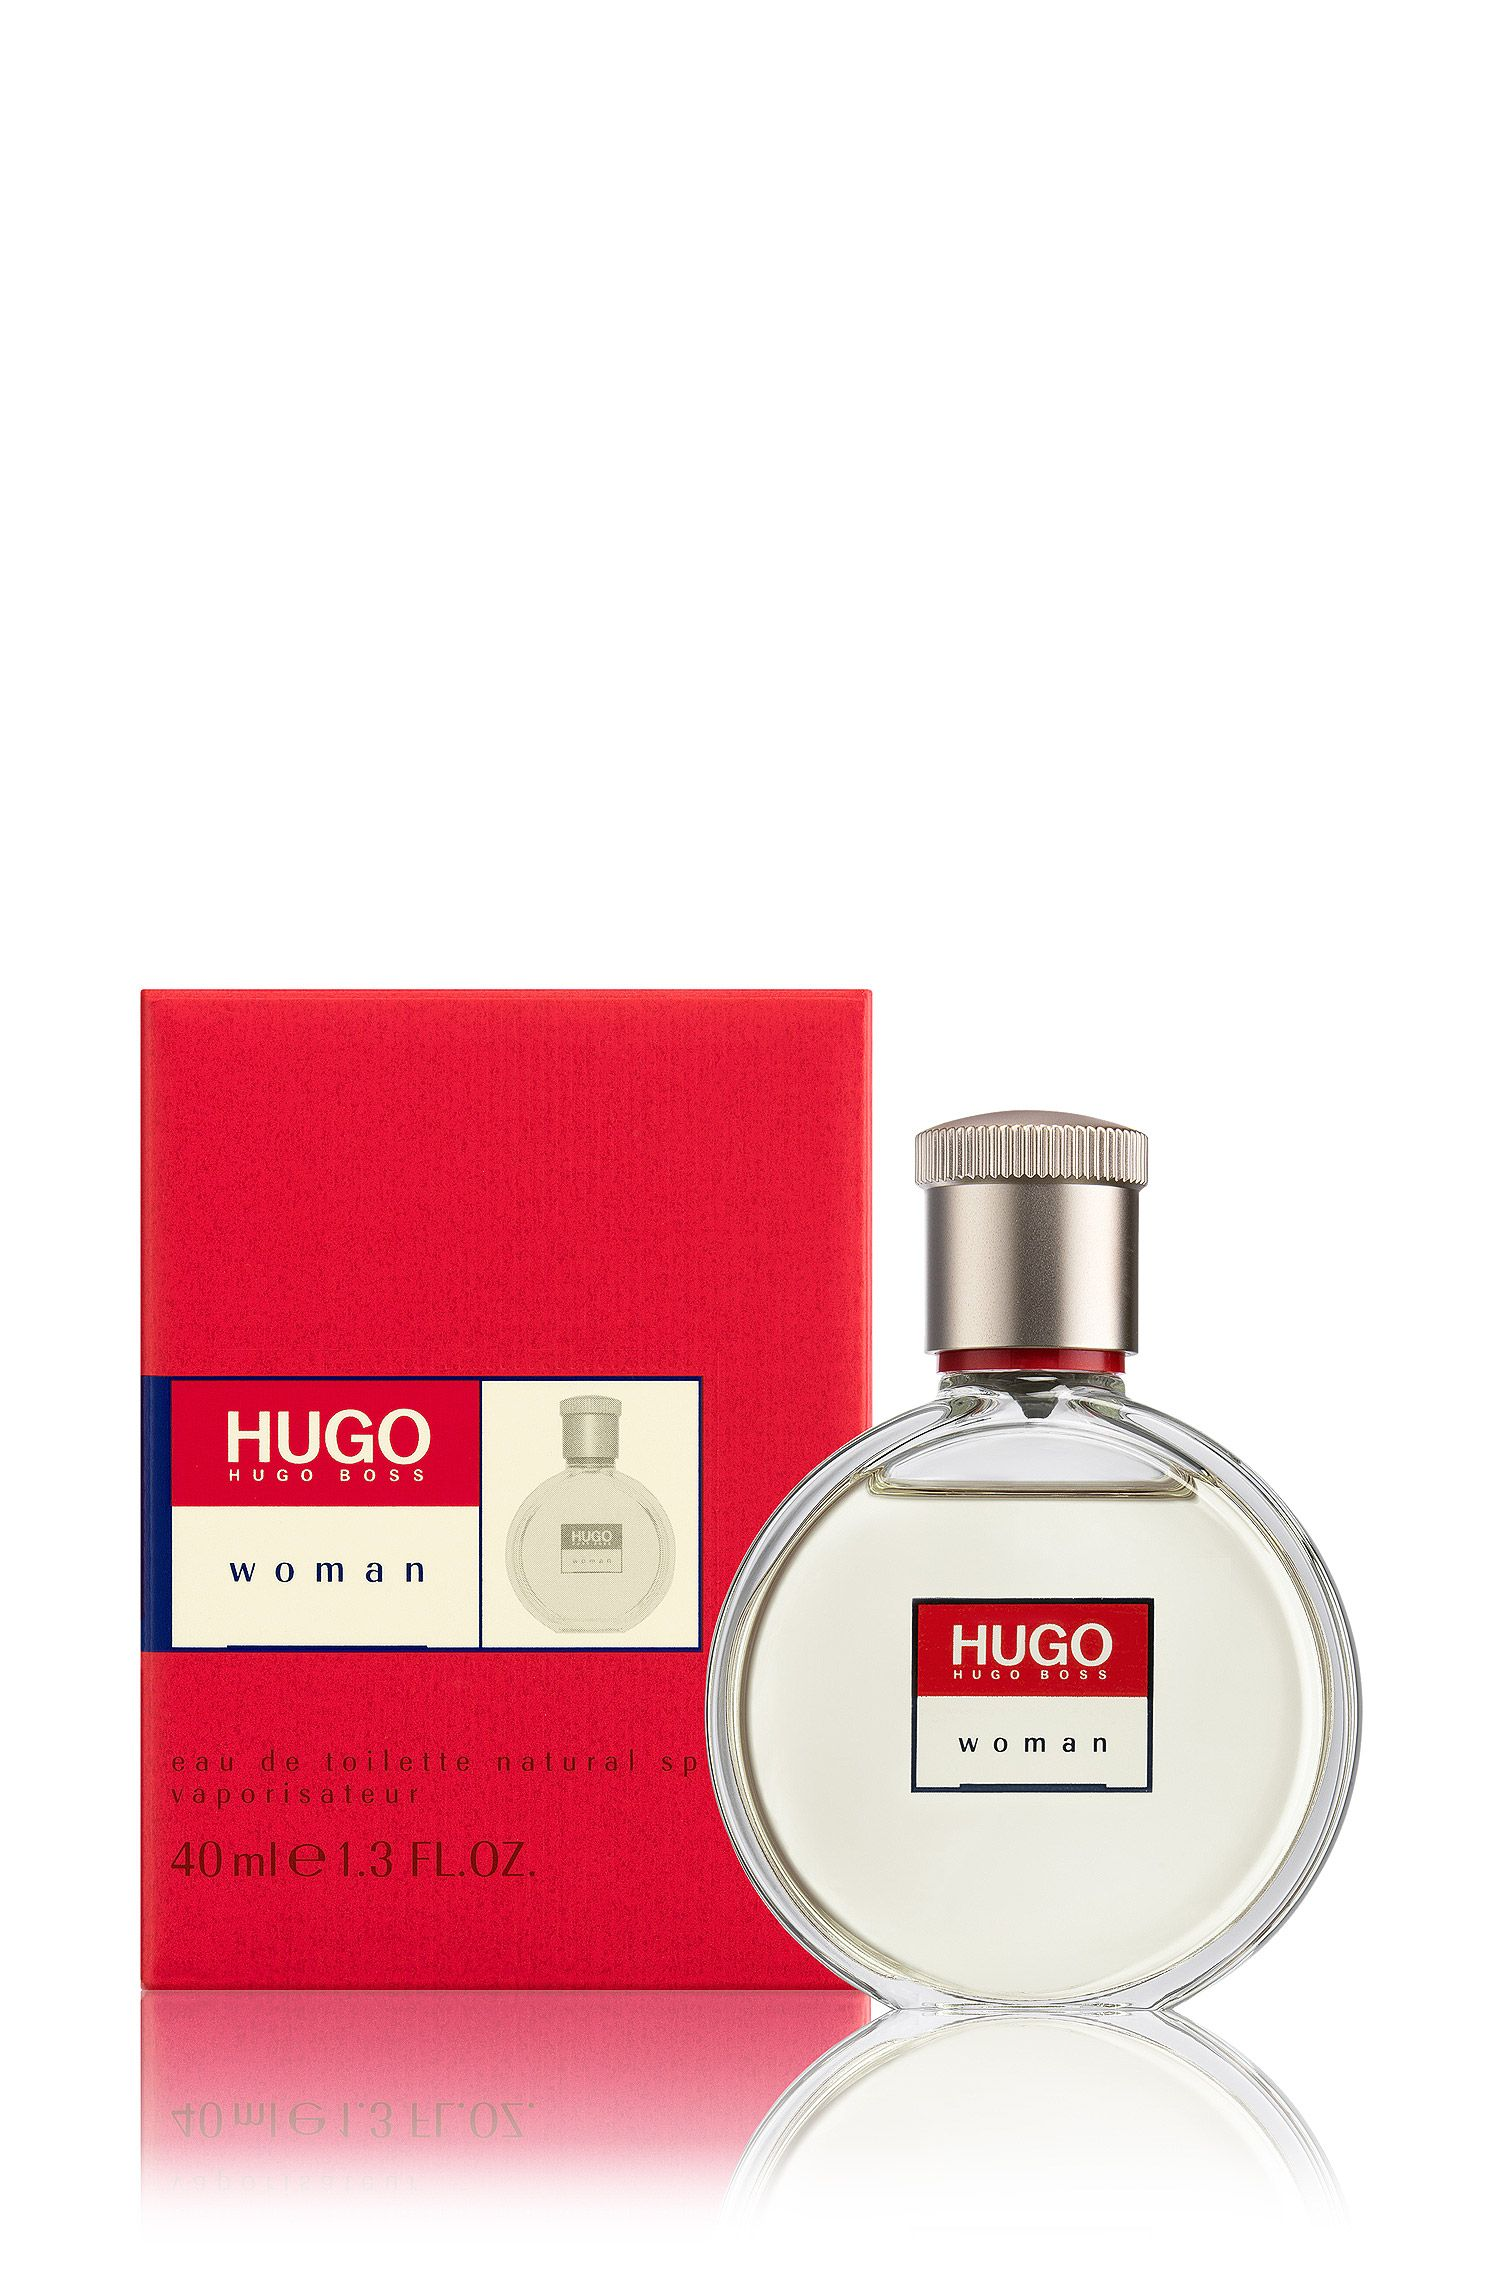 Eau de toilette HUGO Woman 40 ml